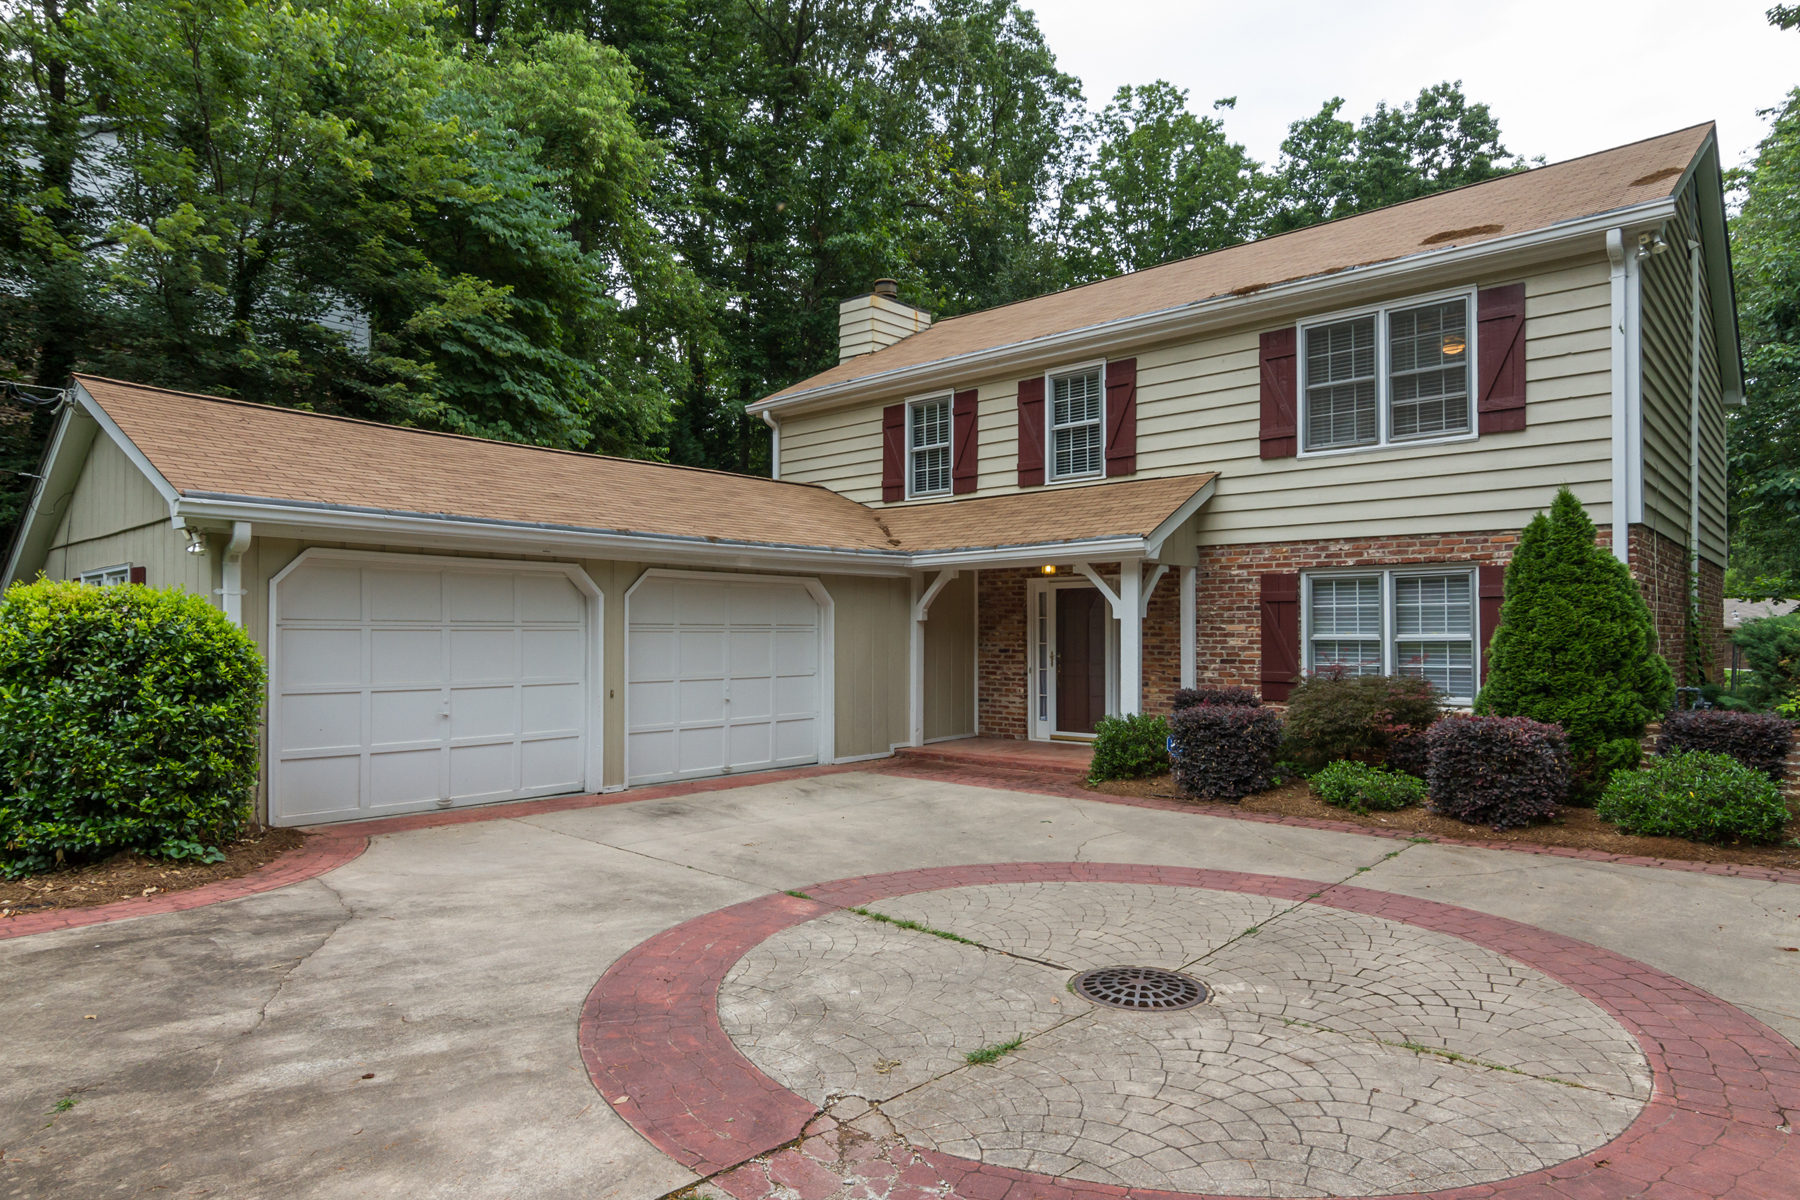 rentals property at Immaculate Condition in Popular Neighborhood